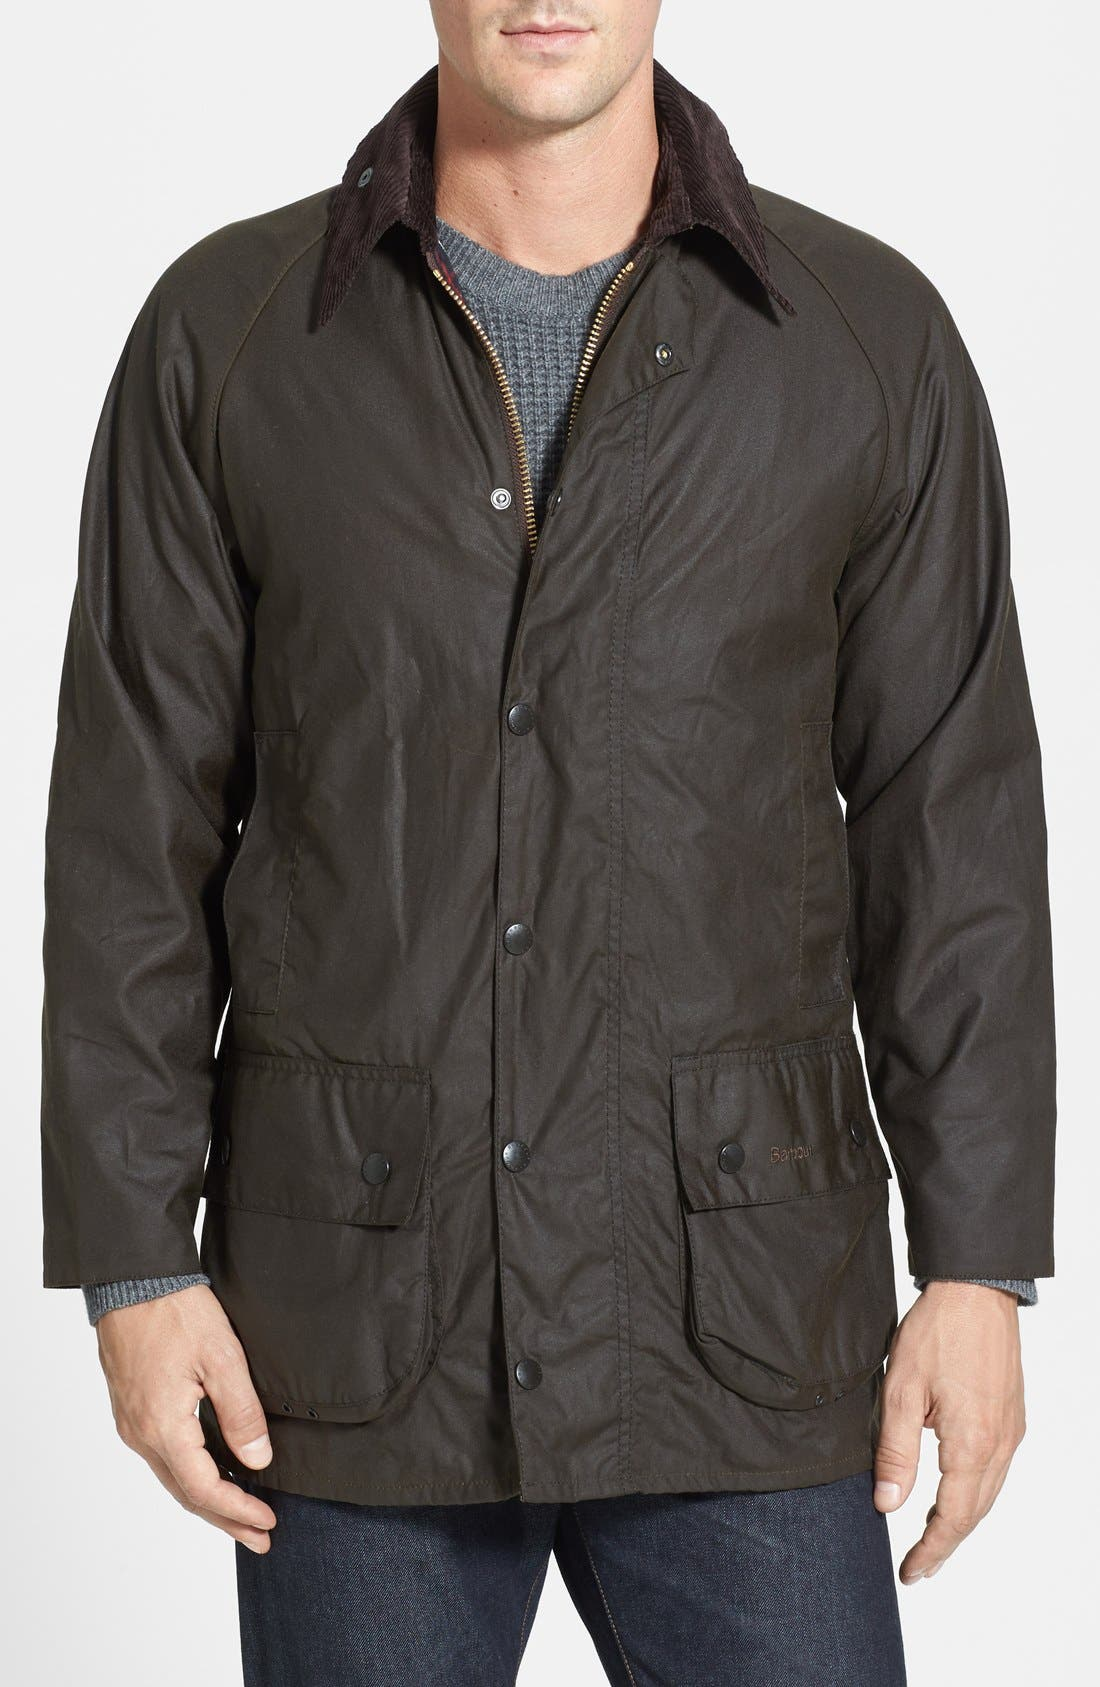 Alternate Image 1 Selected - Barbour 'Classic Beaufort' Relaxed Fit Waxed Cotton Jacket